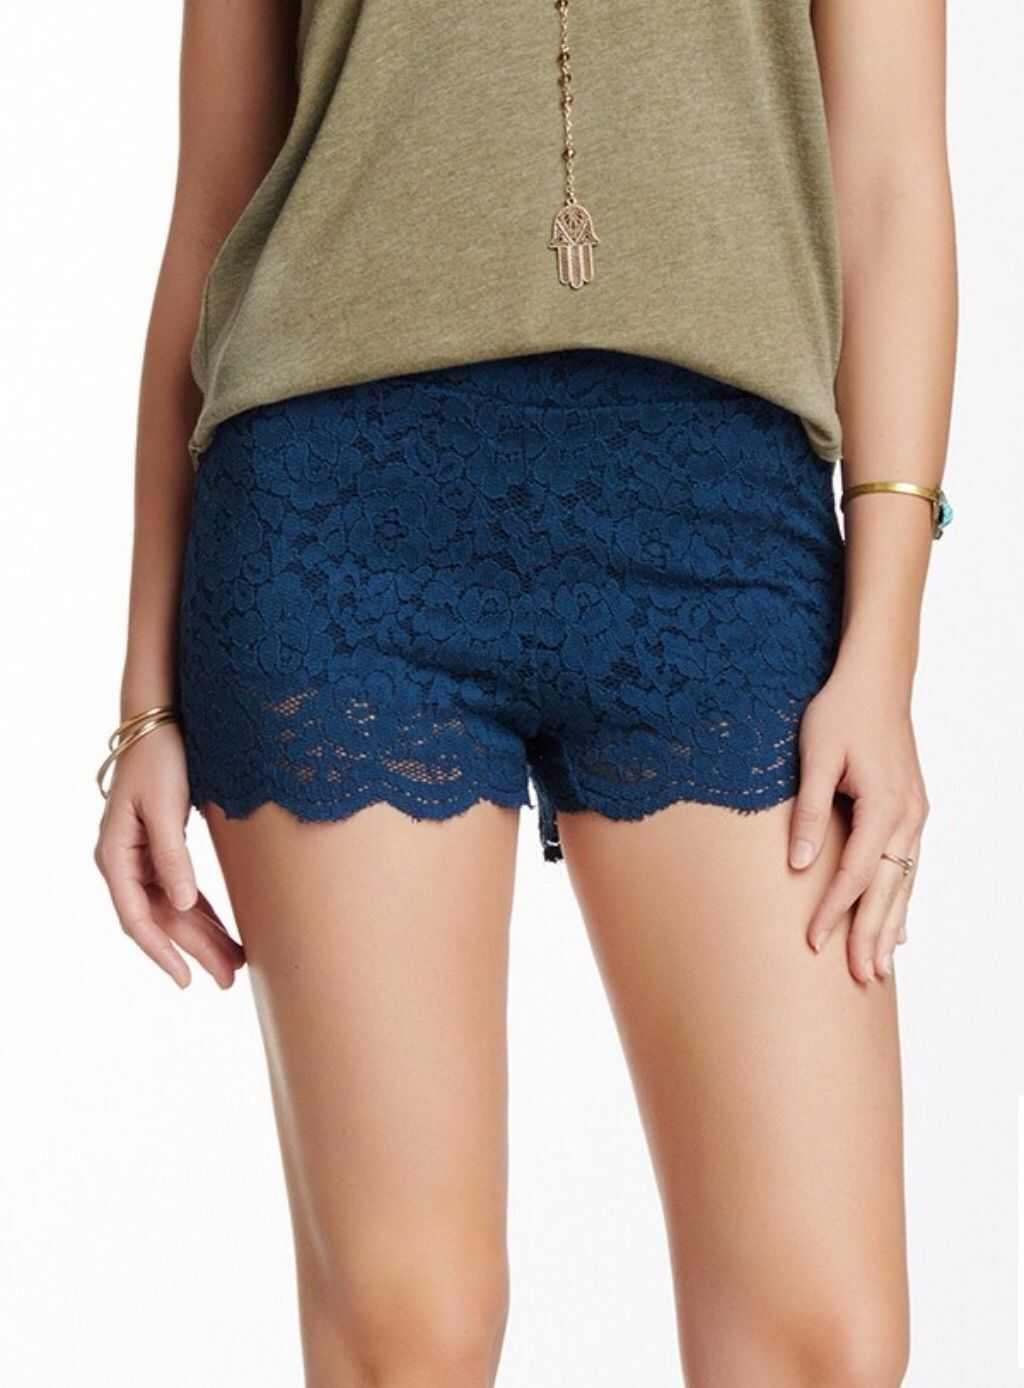 Free People Midnight bluee Stretch Floral Lace Biker Shorts F025P334S - MSRP  68